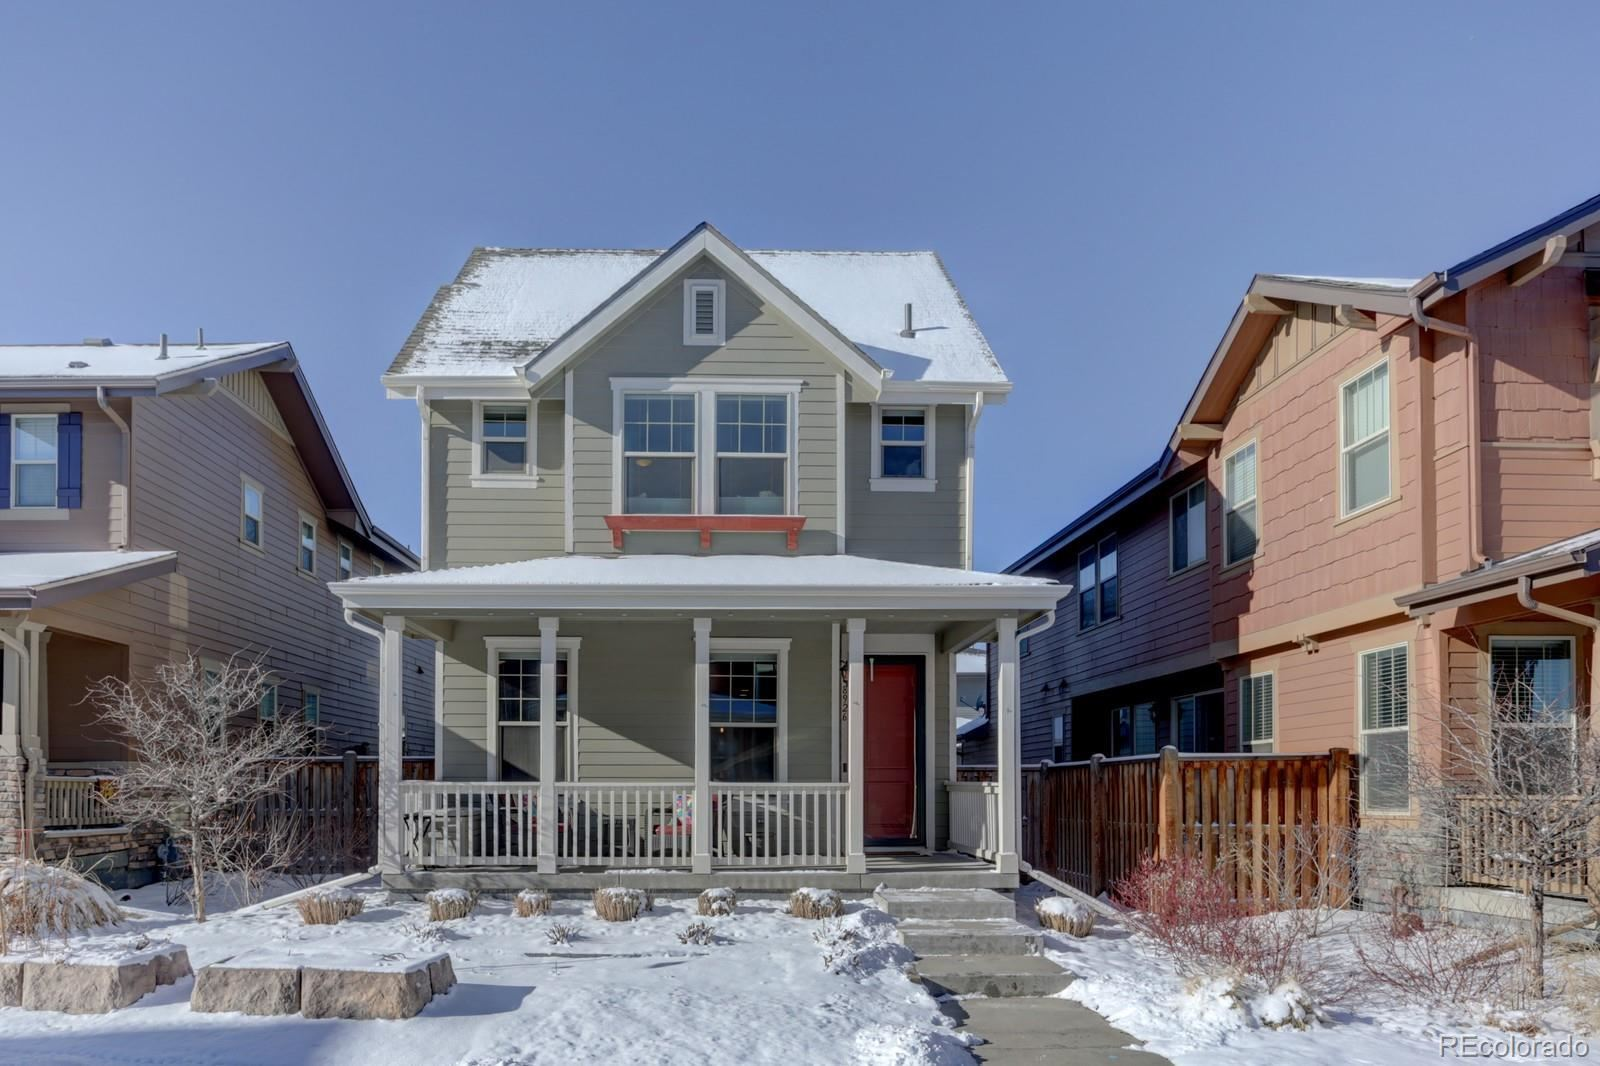 8926 E 50th Avenue, Denver, CO 80238 - #: 7305965